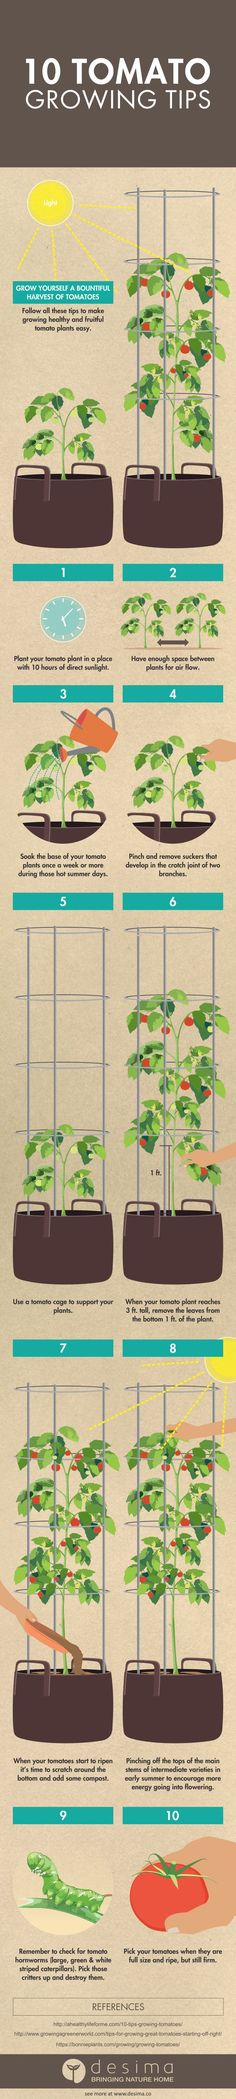 Tomatoes 101: Growing to Preserving - Family Food Garden